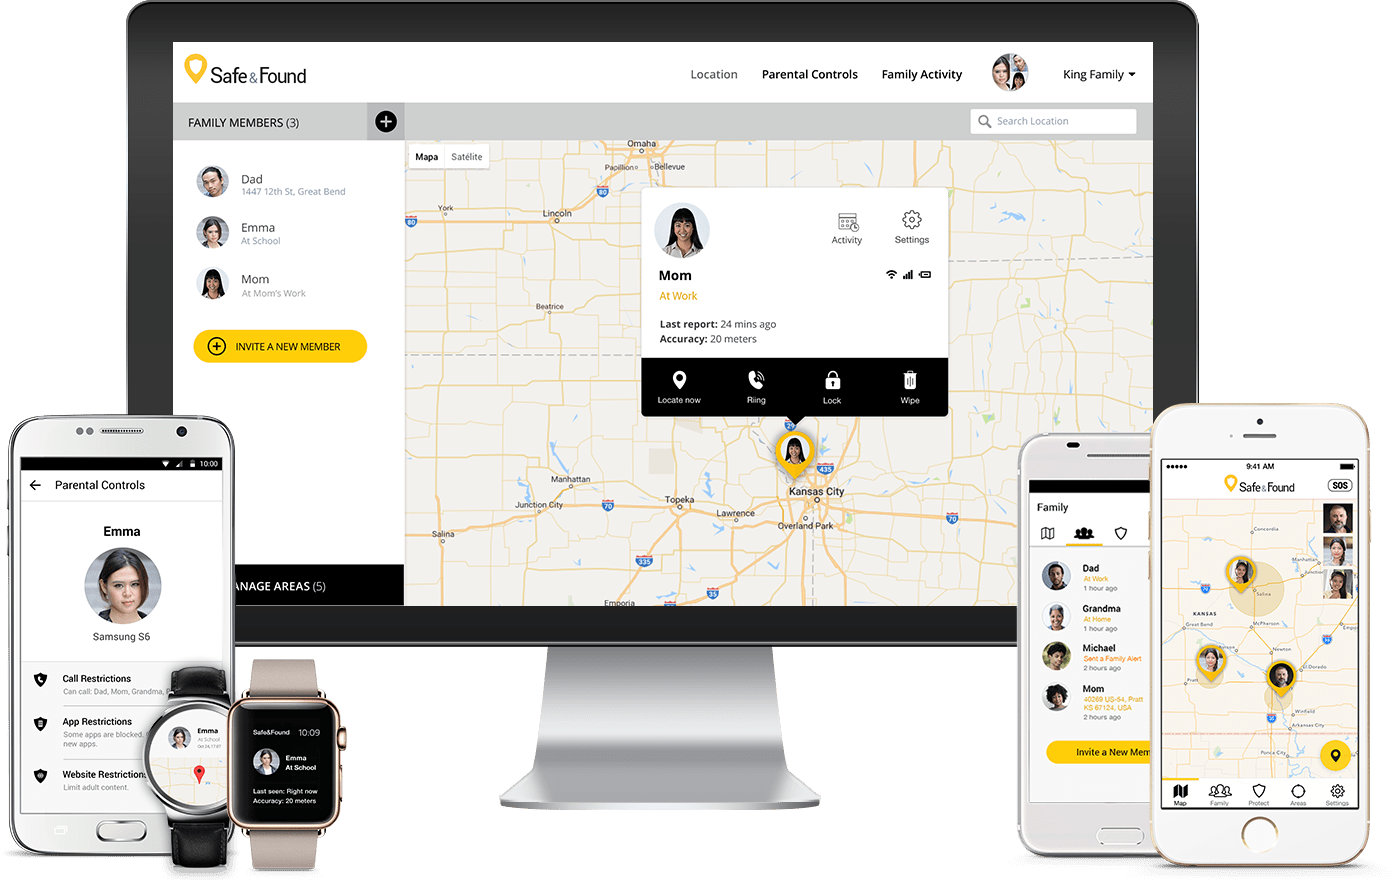 Sprint's Safe and Found combines parental controls with